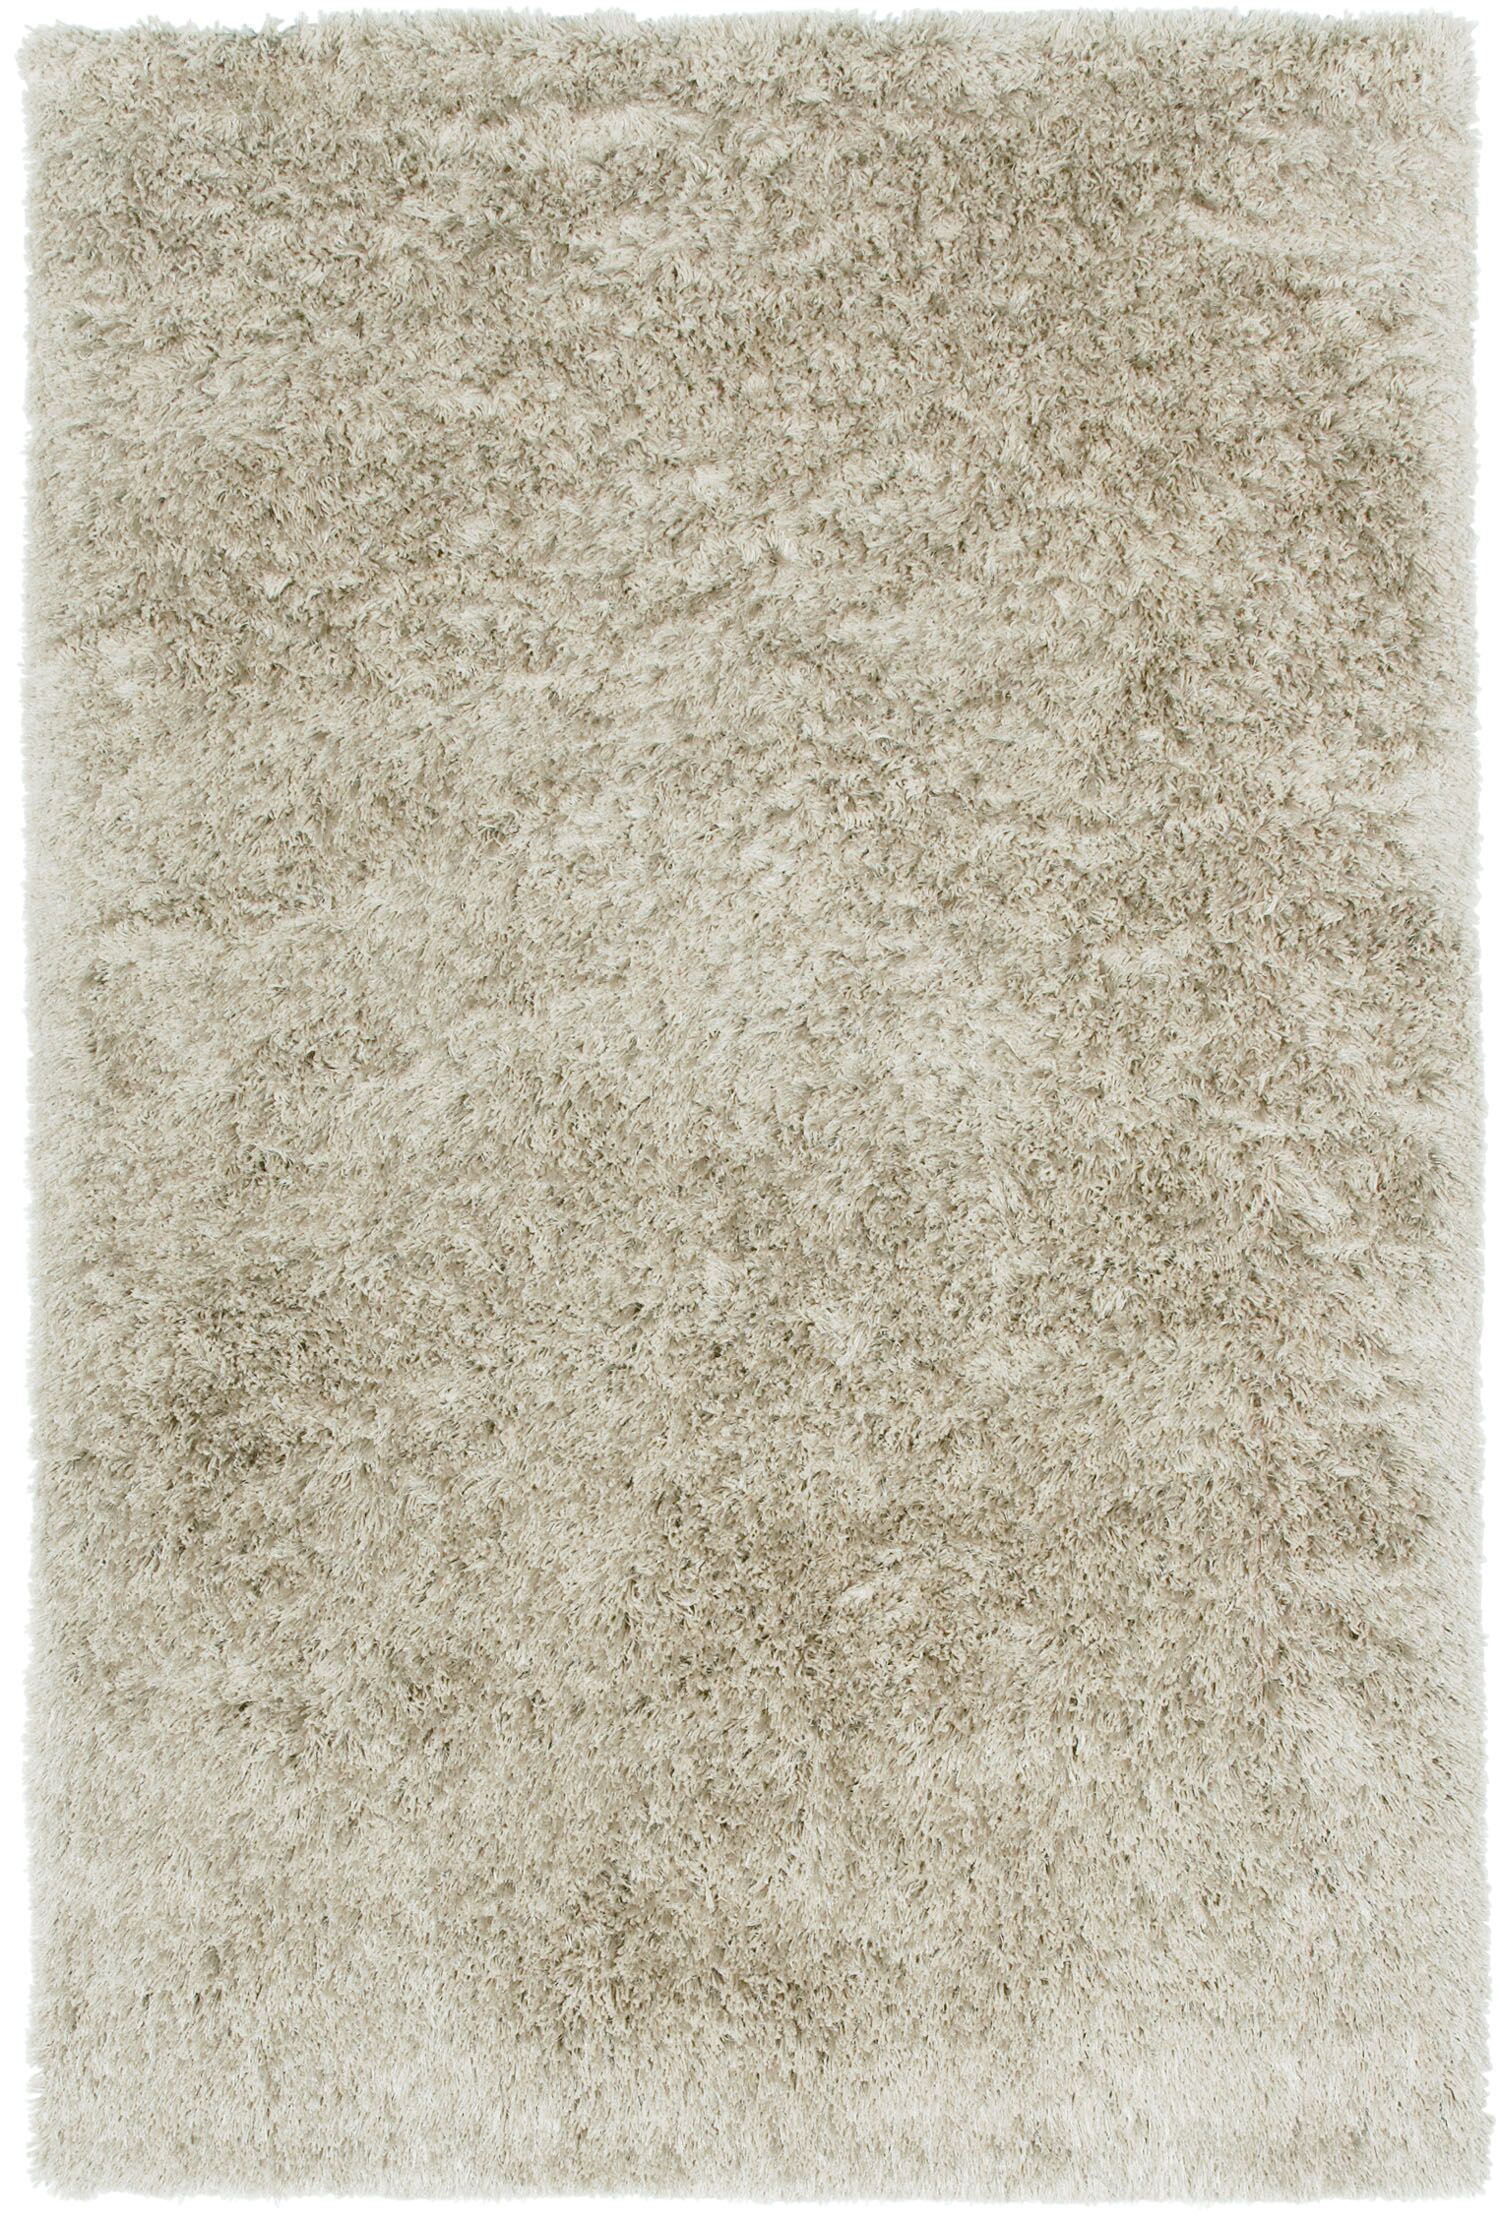 Trolley Line Ivory Area Rug Rug Size: Rectangle 8' x 11'